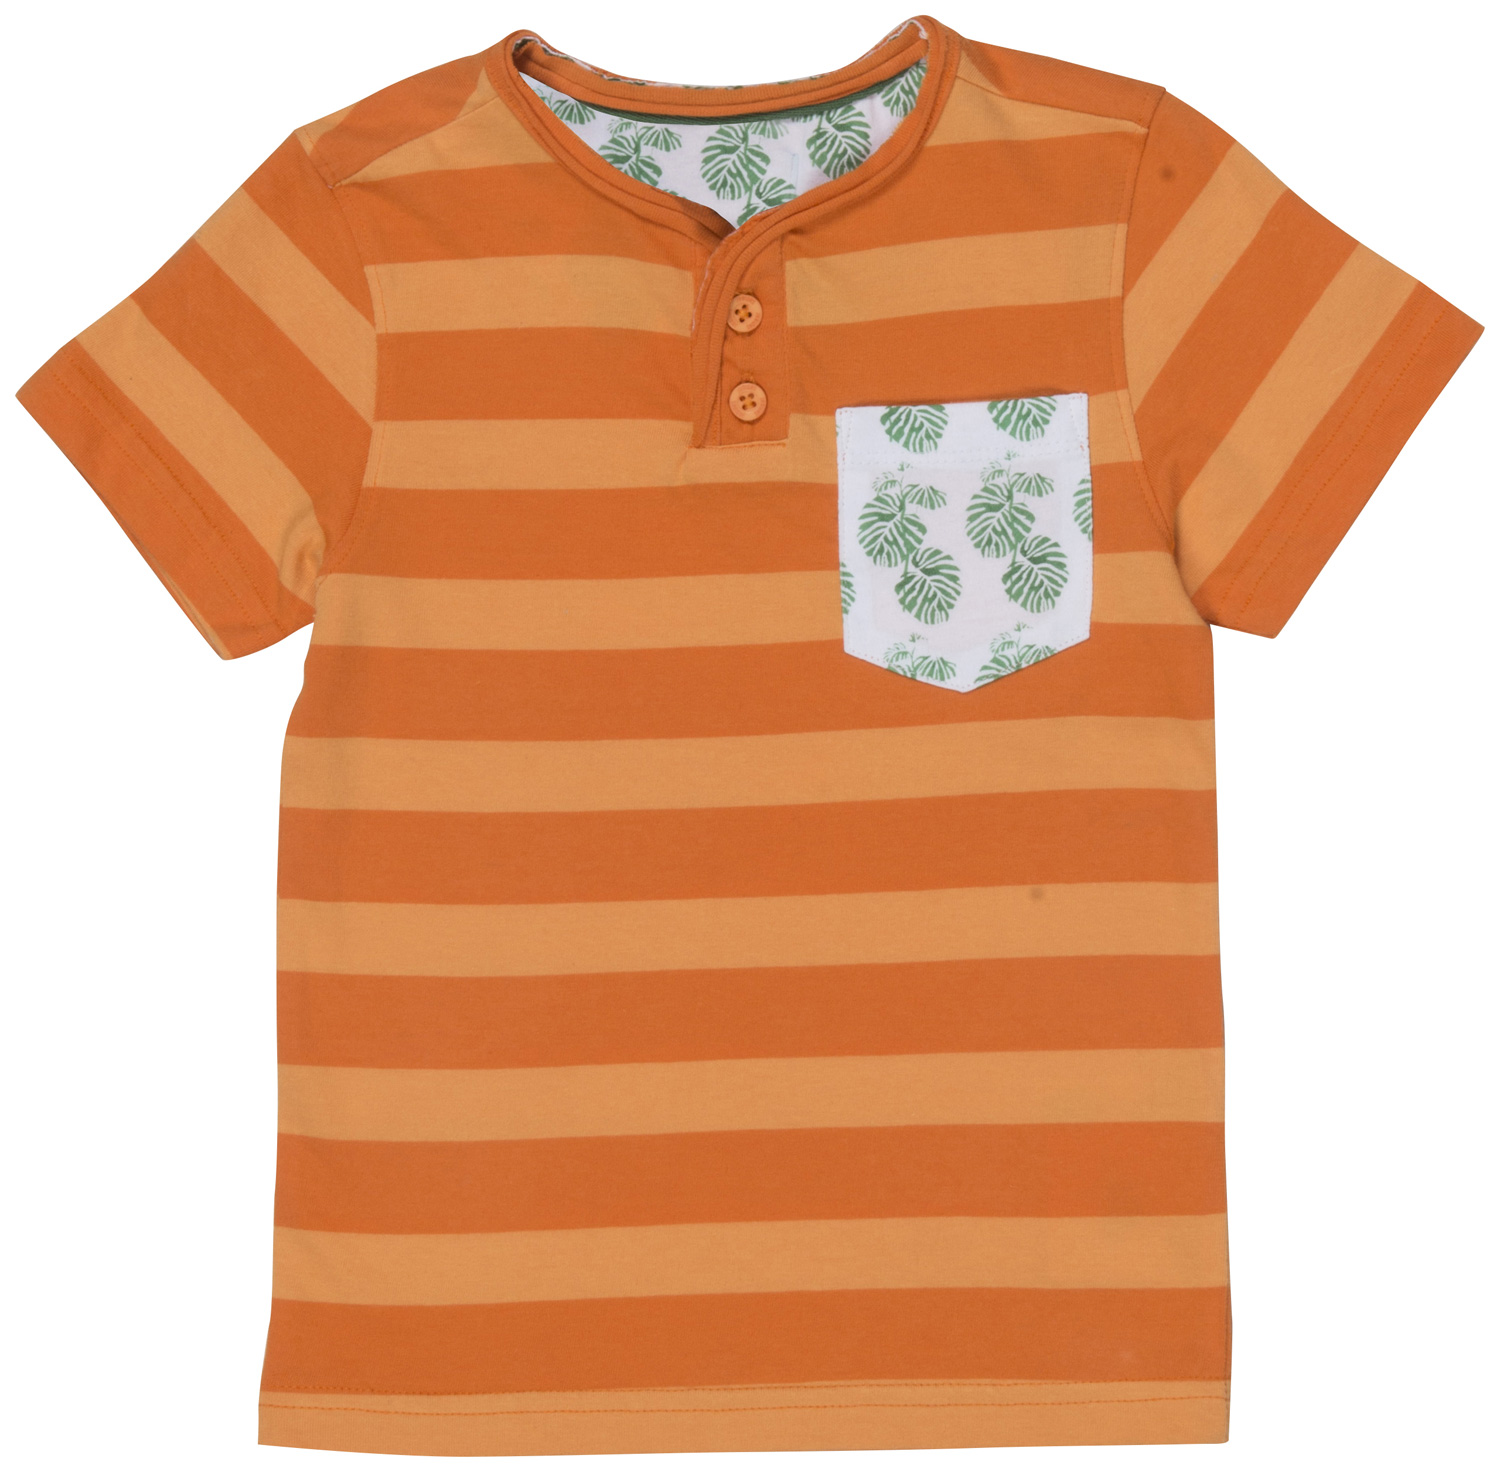 Boys T shirts Tirupur T shirts Manufacturers Boys Clothing